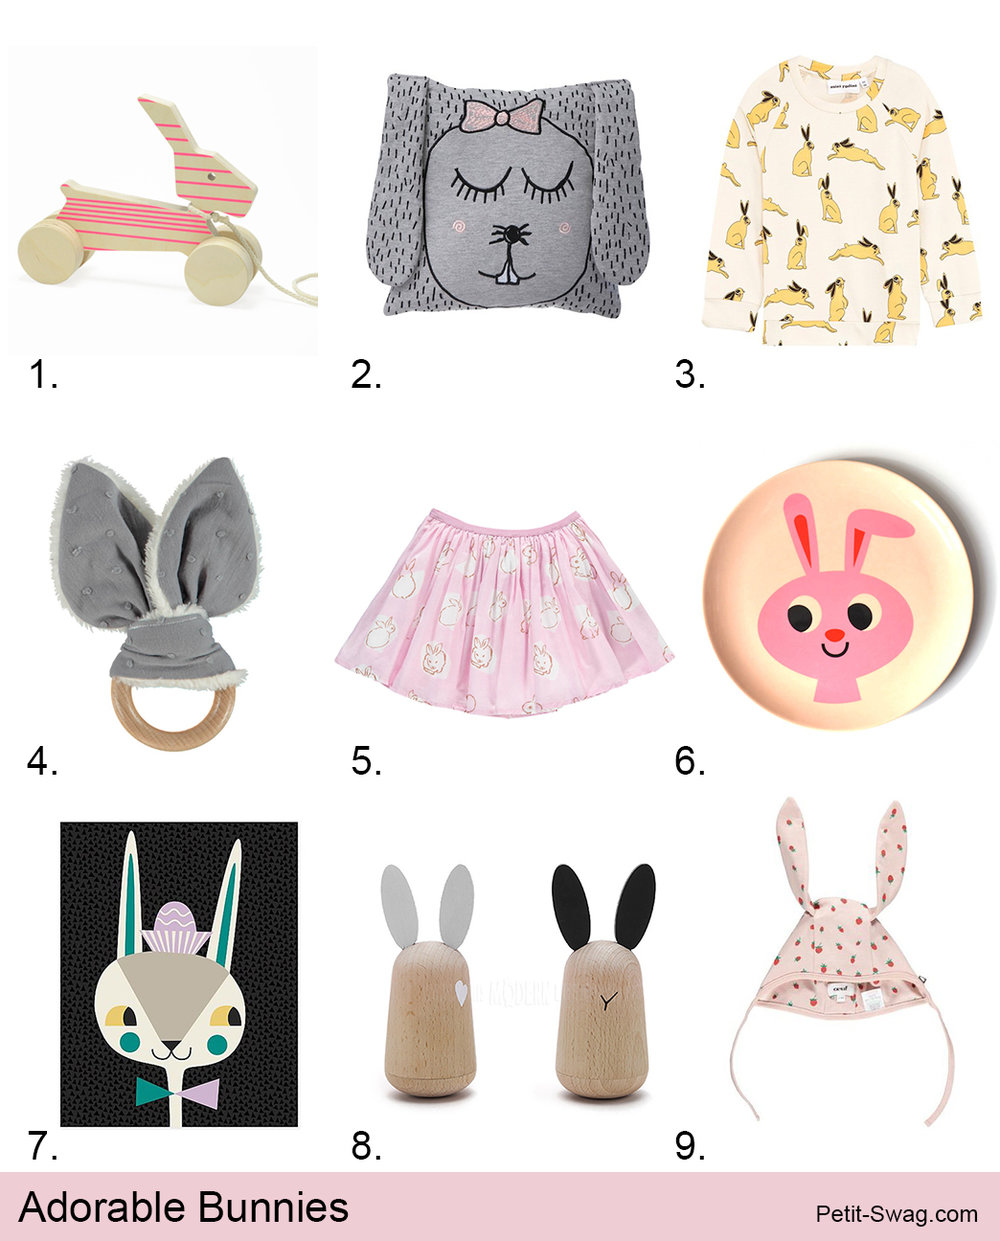 Adorable Bunnies | Petit-Swag.com